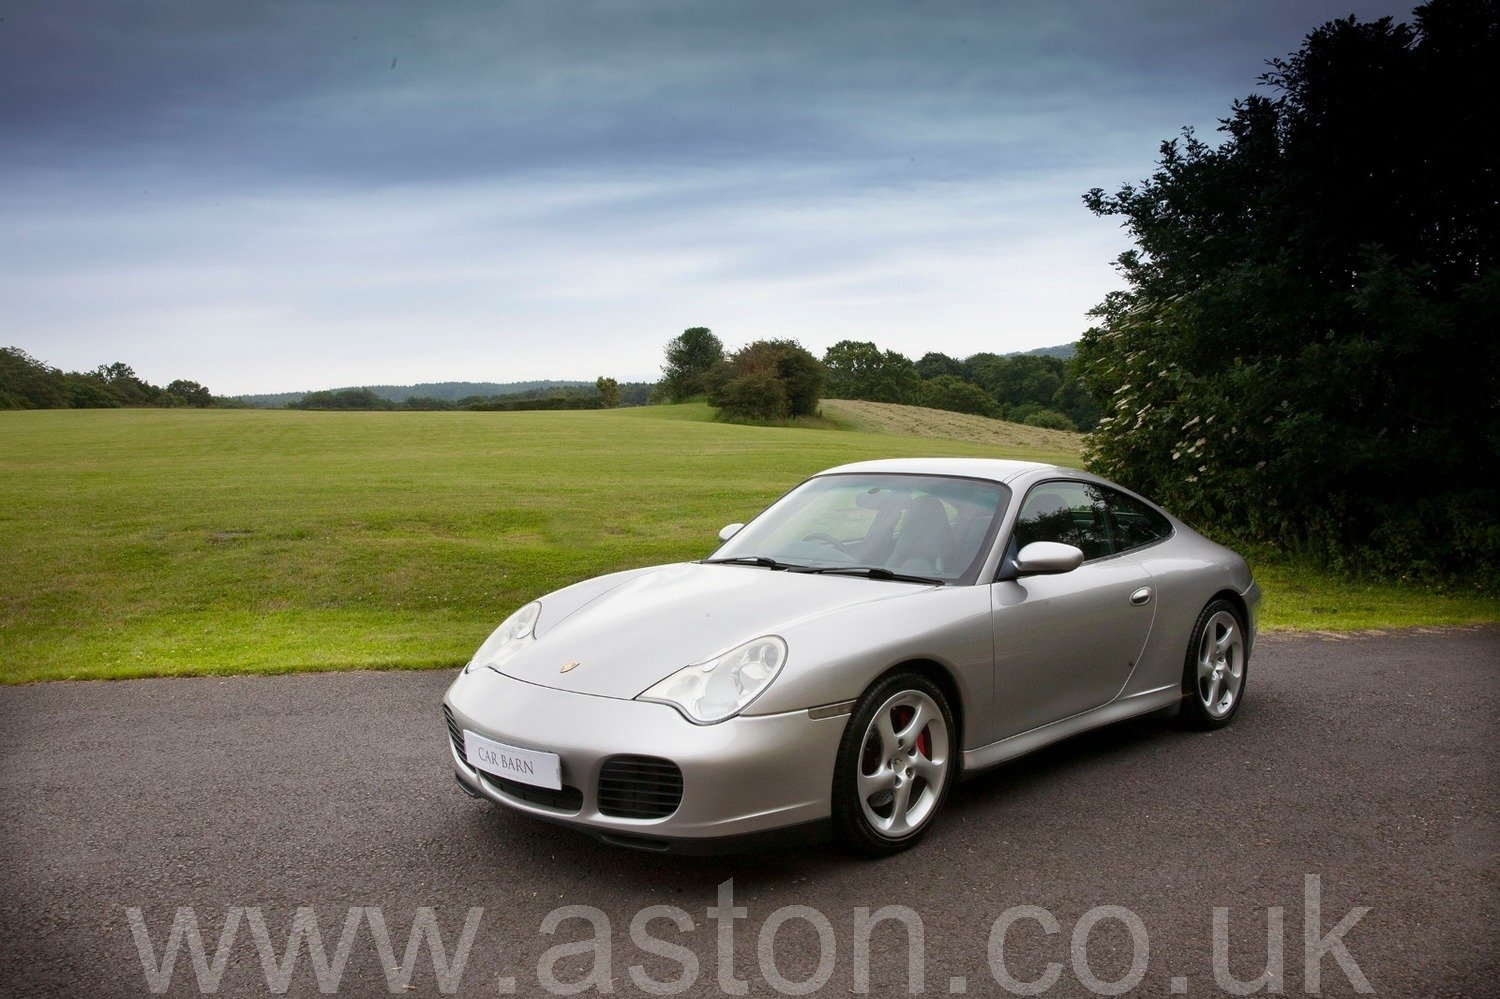 2003 Porsche 911 C4S Tiptronic For Sale (picture 1 of 6)